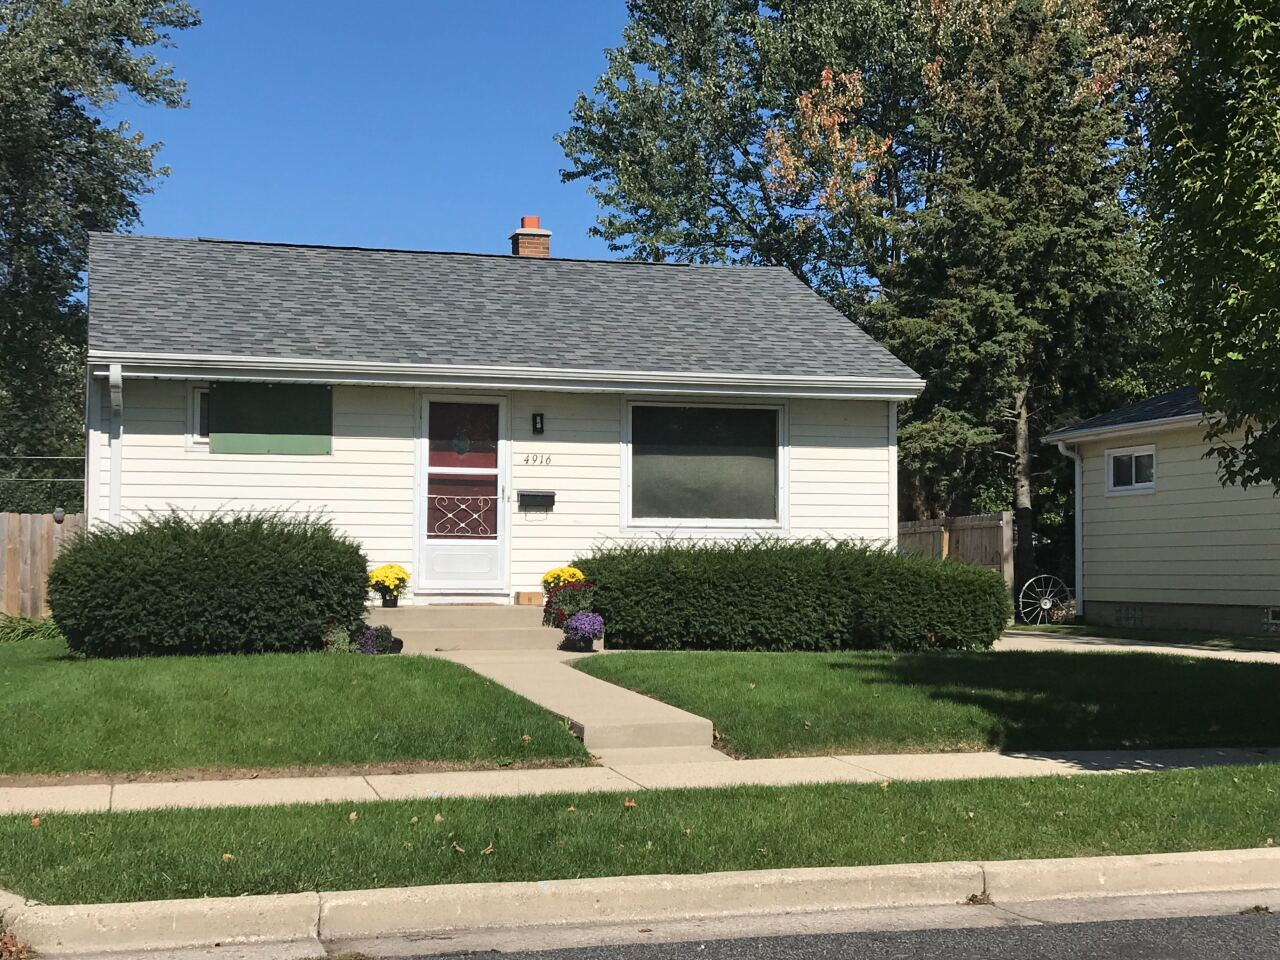 Home of reported vaping operation in Milwaukee